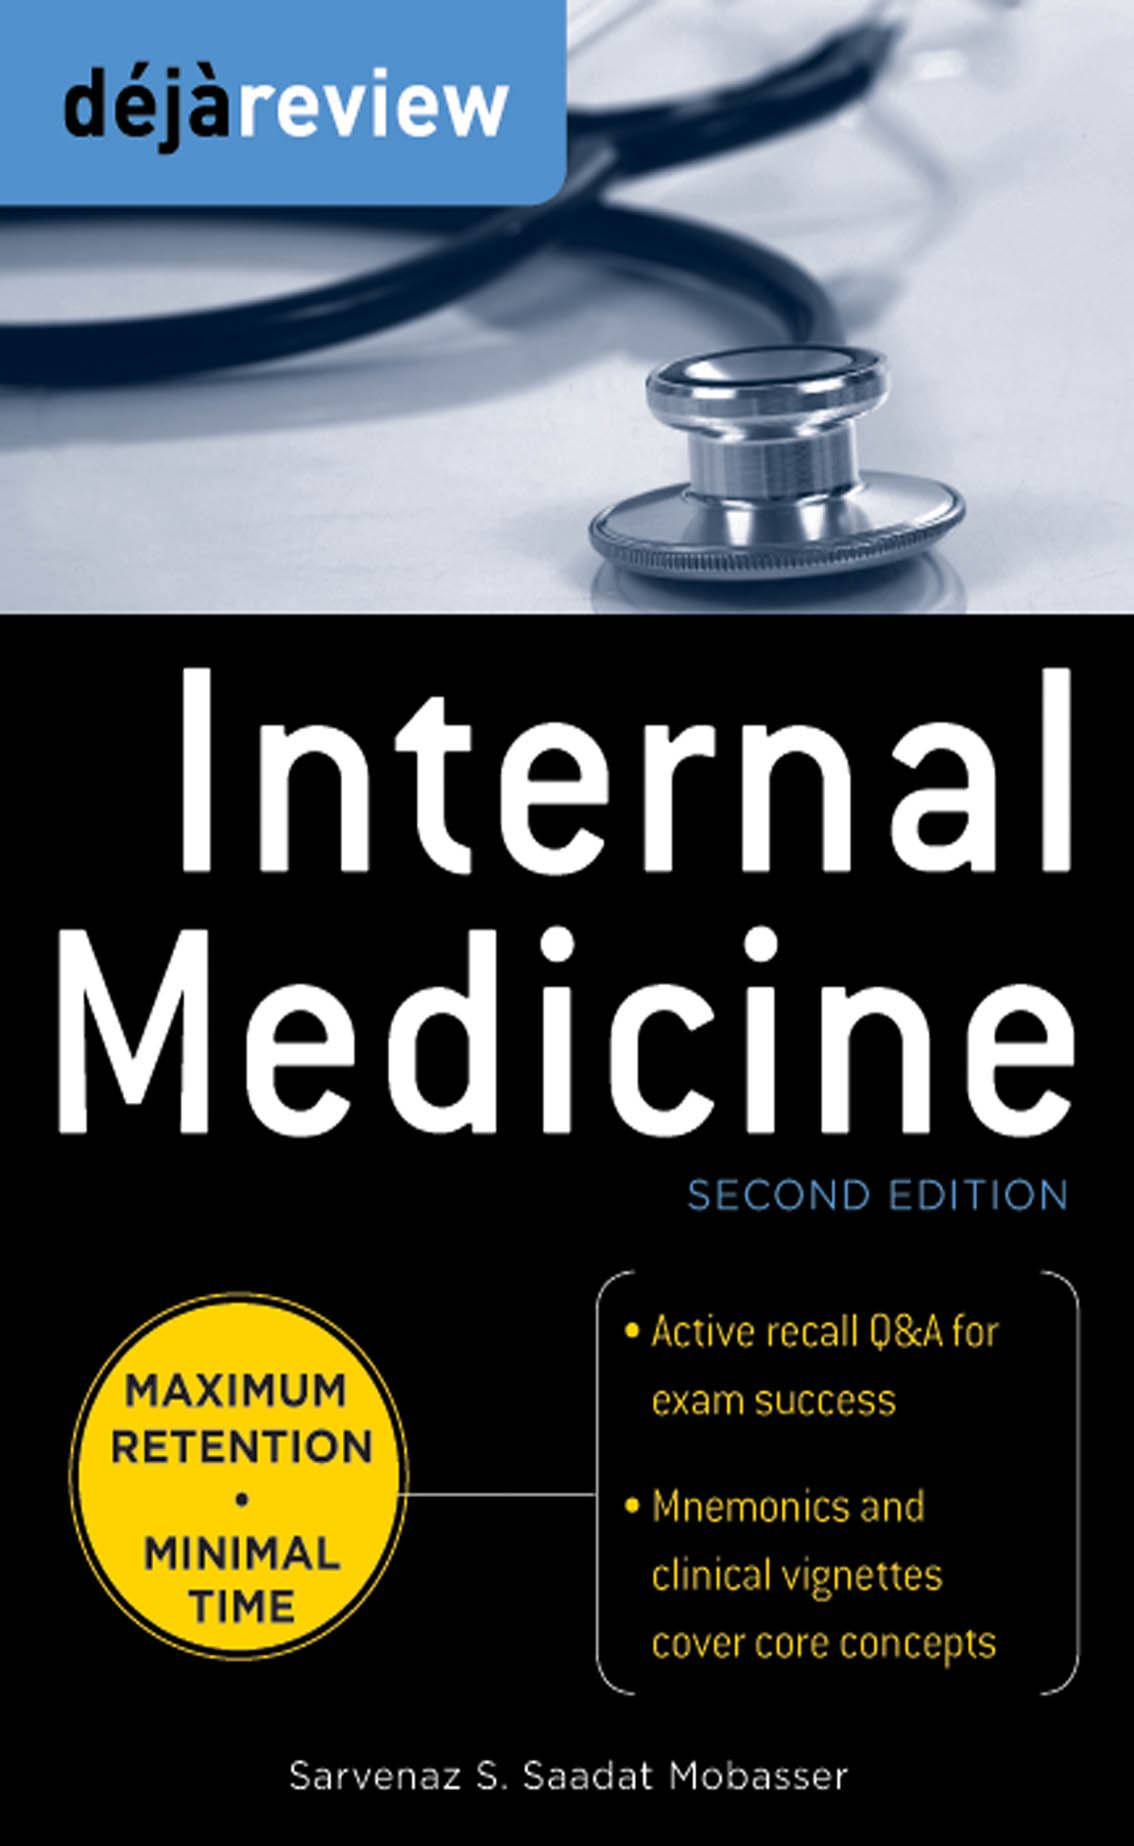 Deja Review Internal Medicine, 2nd Edition By: Sarvenaz Saadat